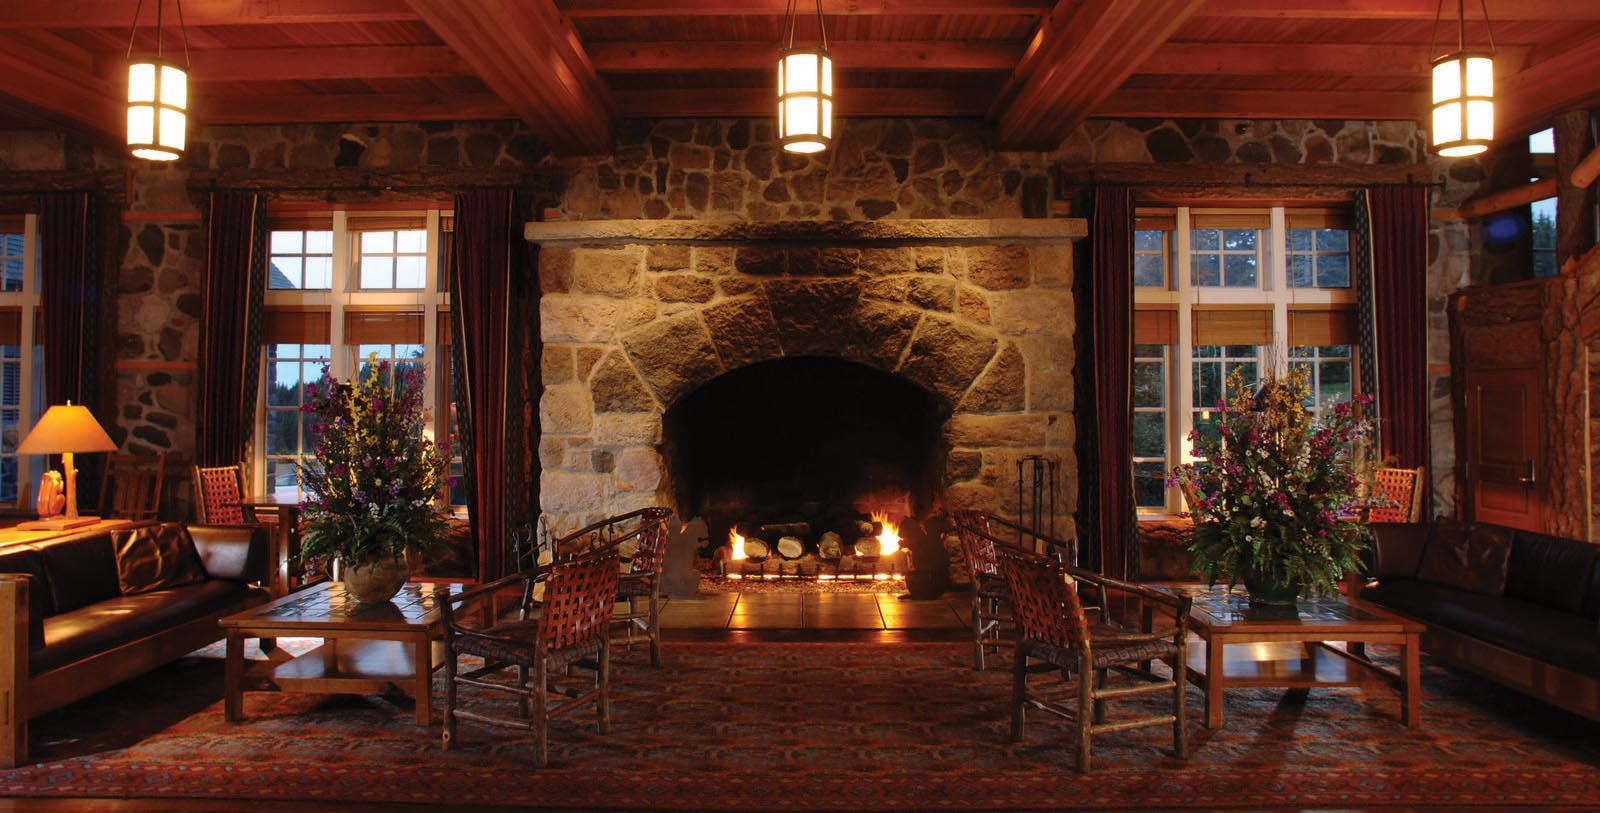 Image of fireplace in lobby Crater Lake Lodge, 1915, Member of Historic Hotels of America, White City, Oregon, Experience